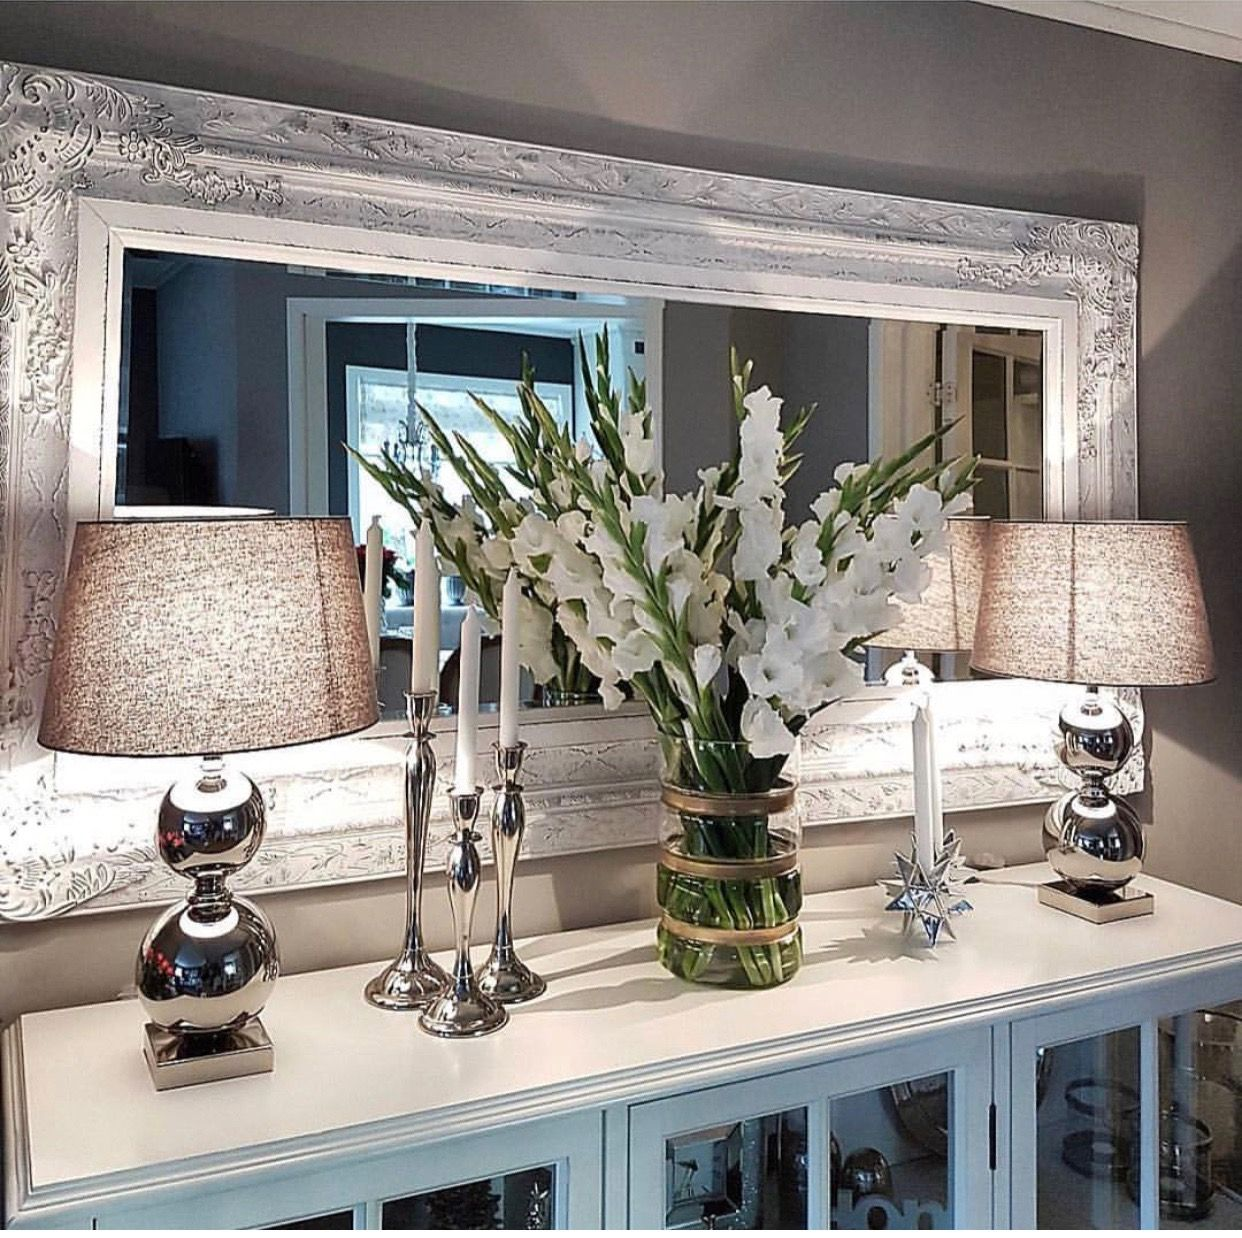 Pin by angie hall on titusville house in pinterest home